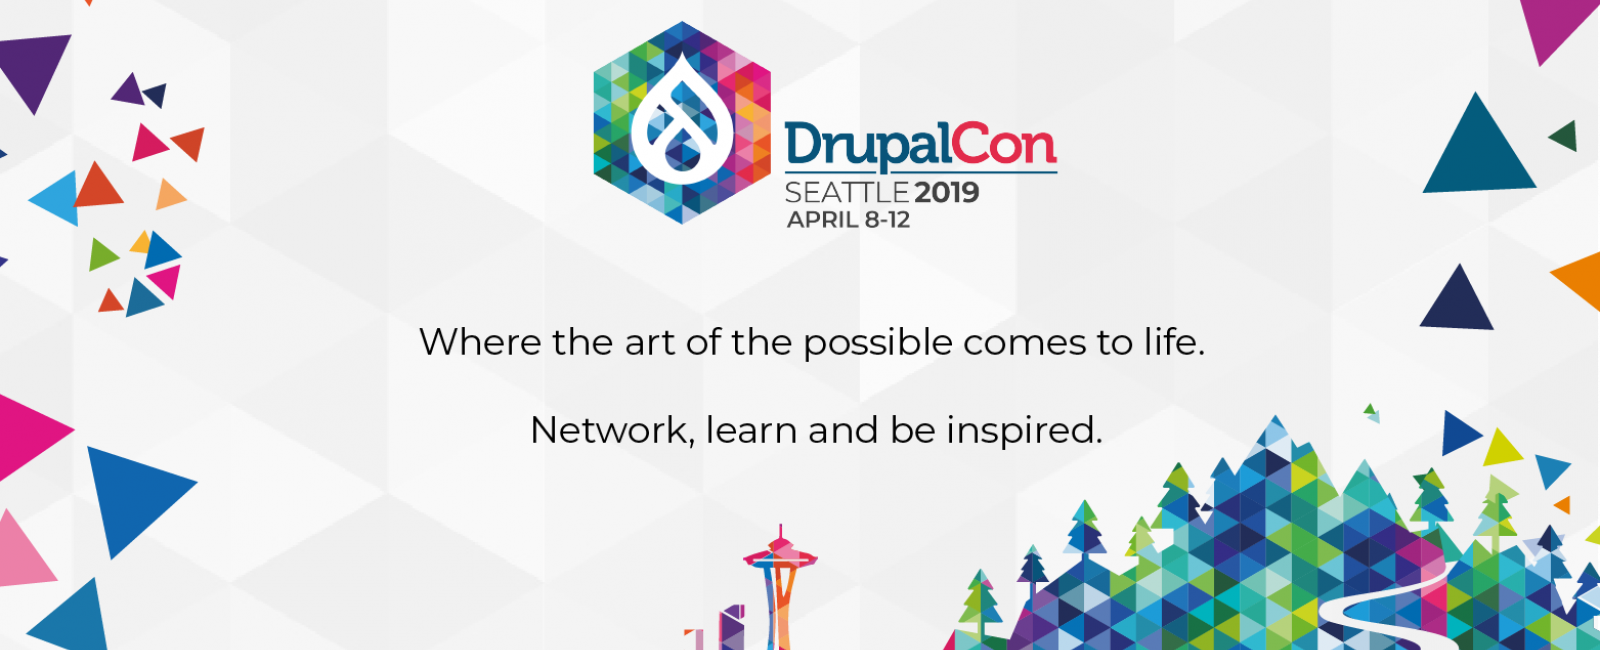 DrupalCon Seattle 2019 logo